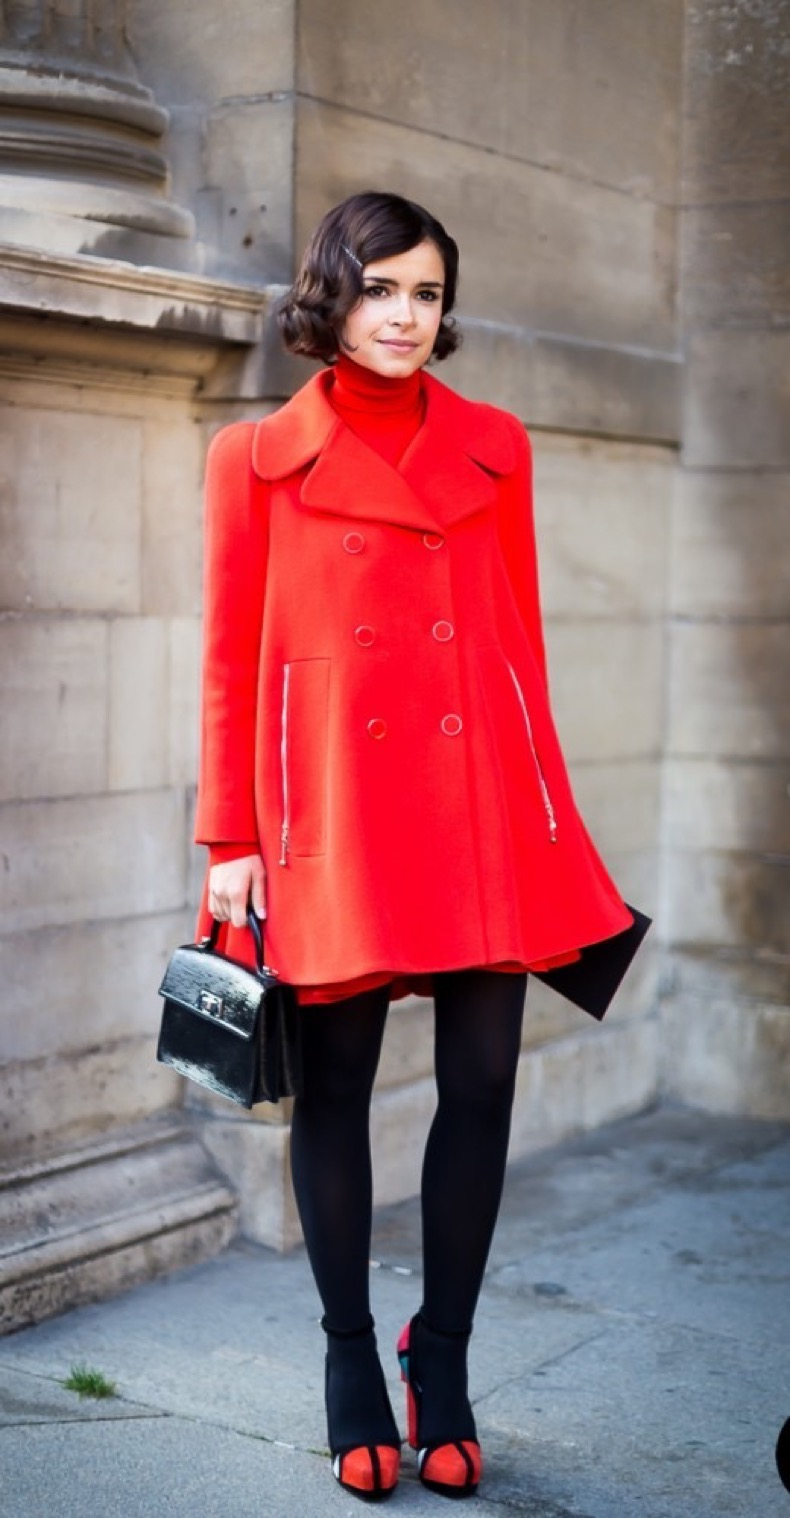 2.-red-coat-with-black-tights-520x999